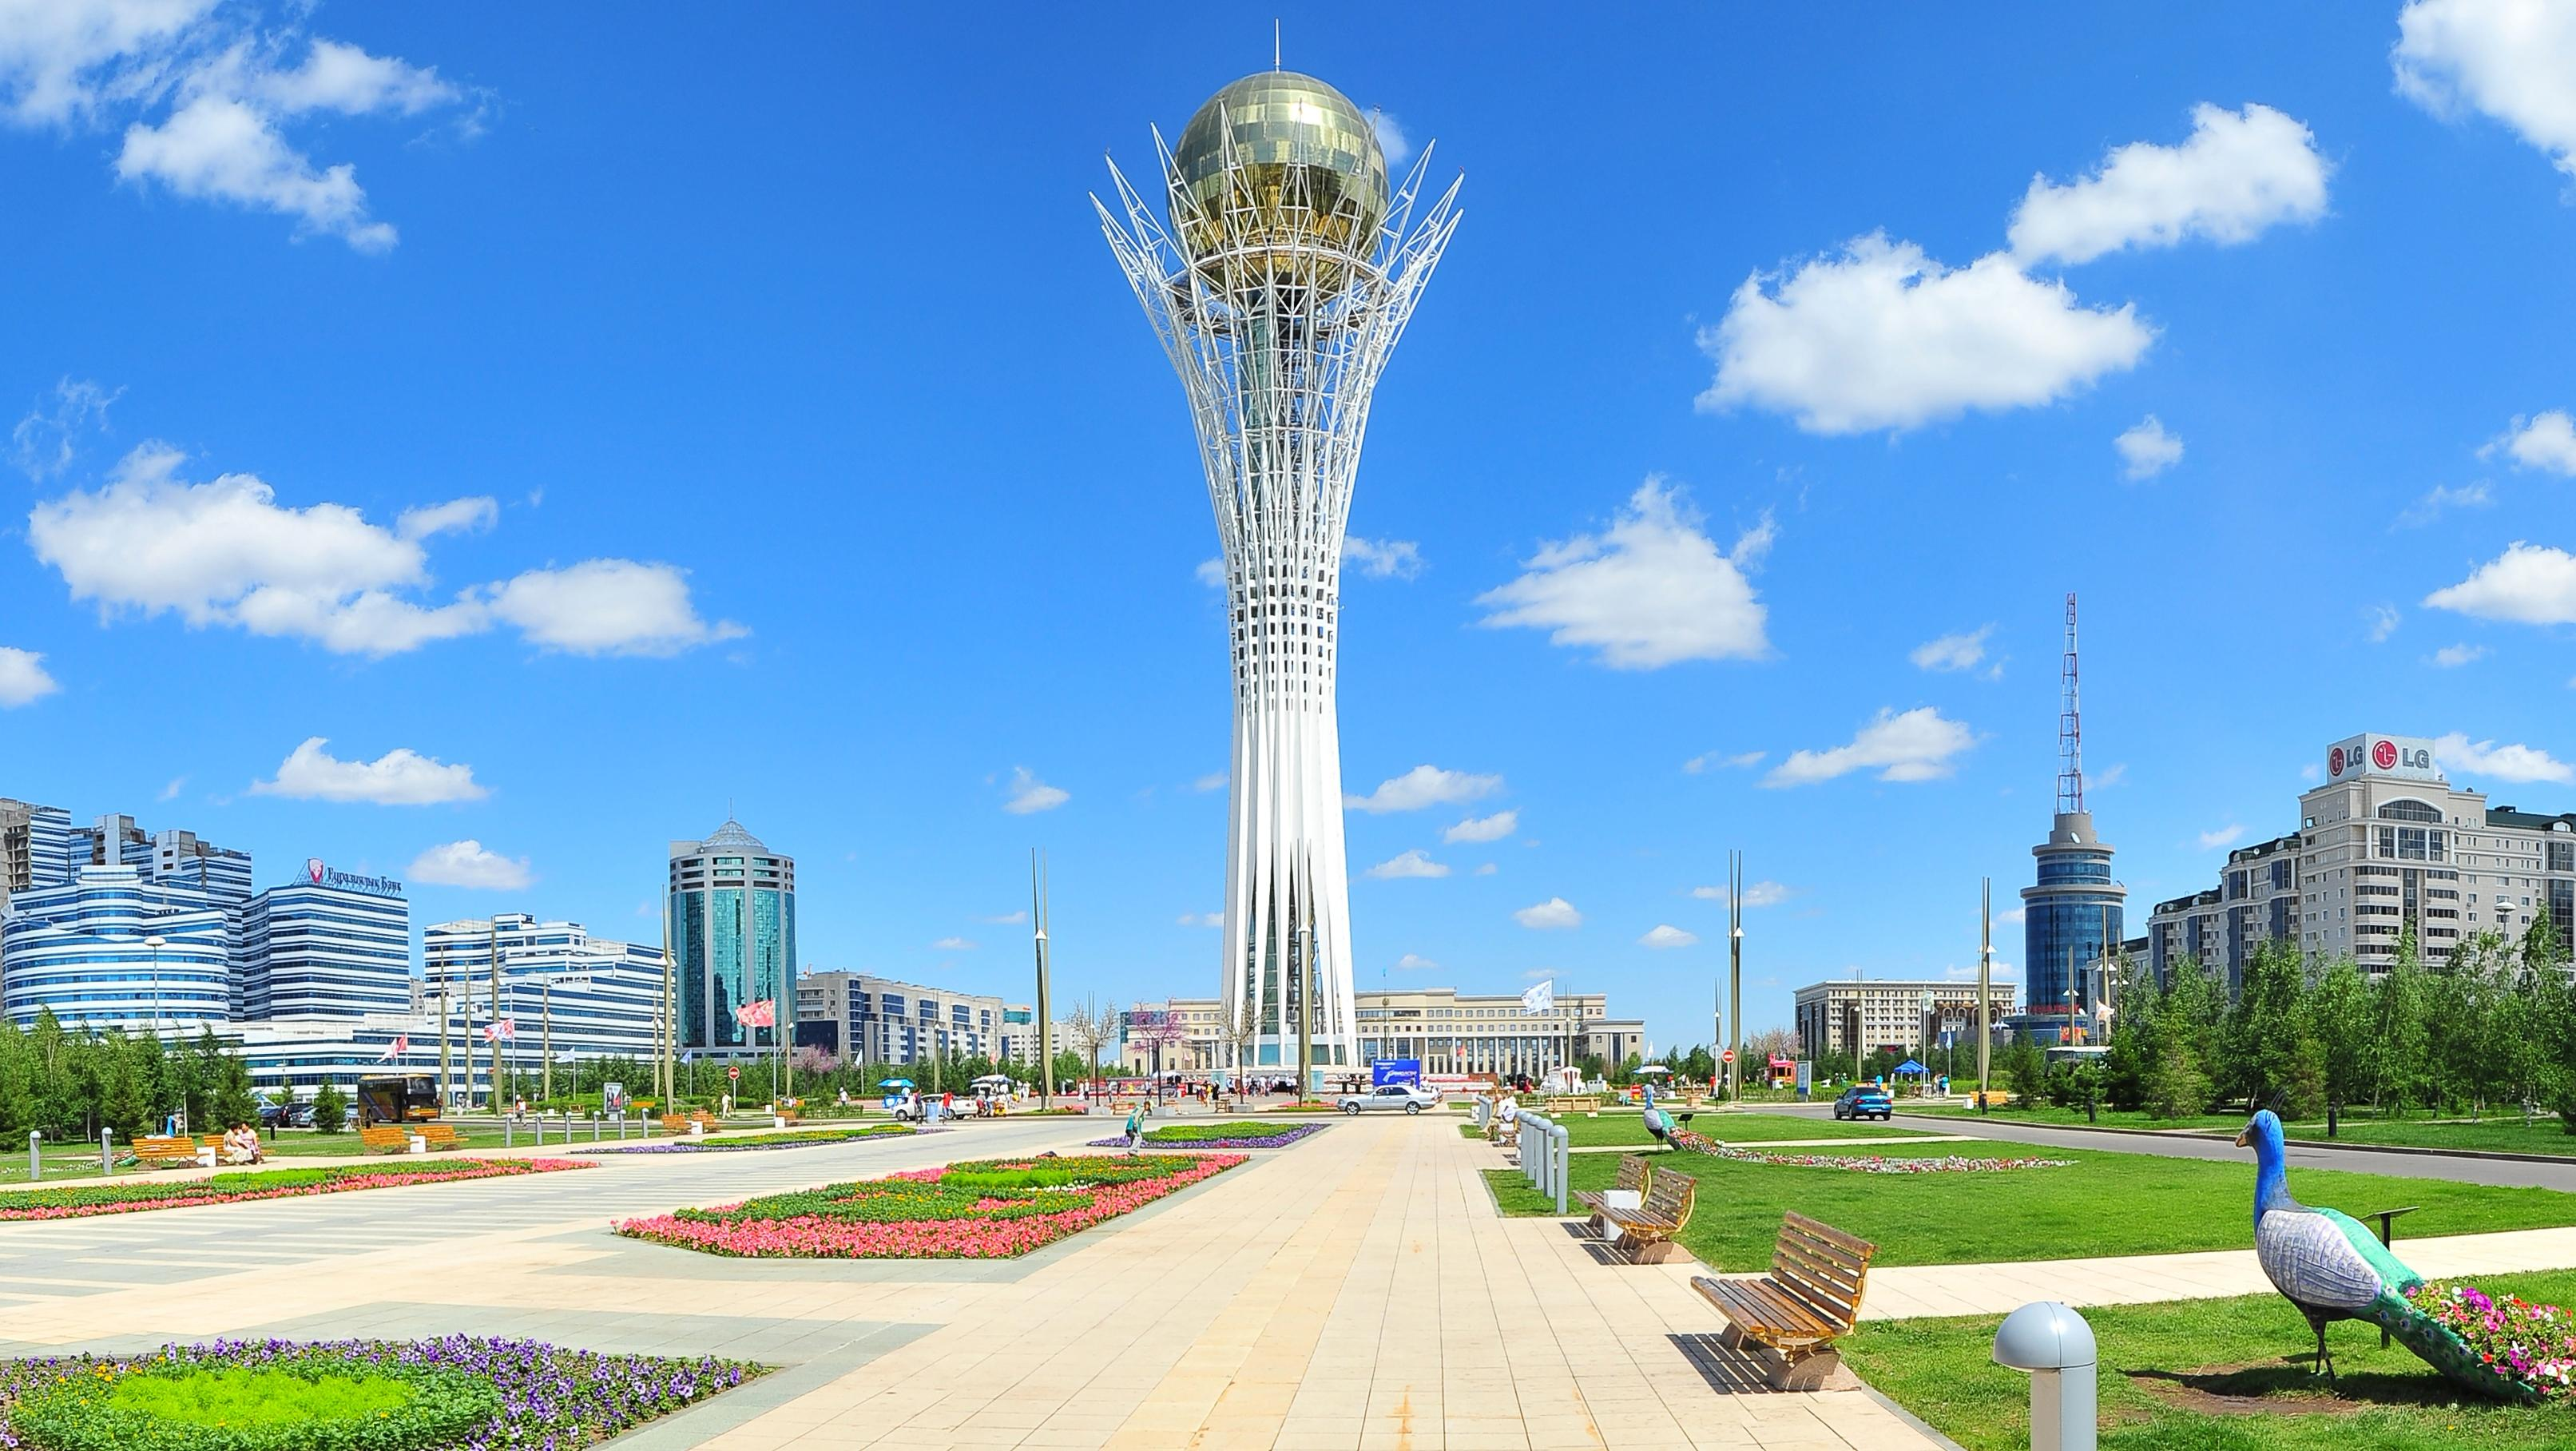 expo 2017 astana  180 days left until the expo 2017 in